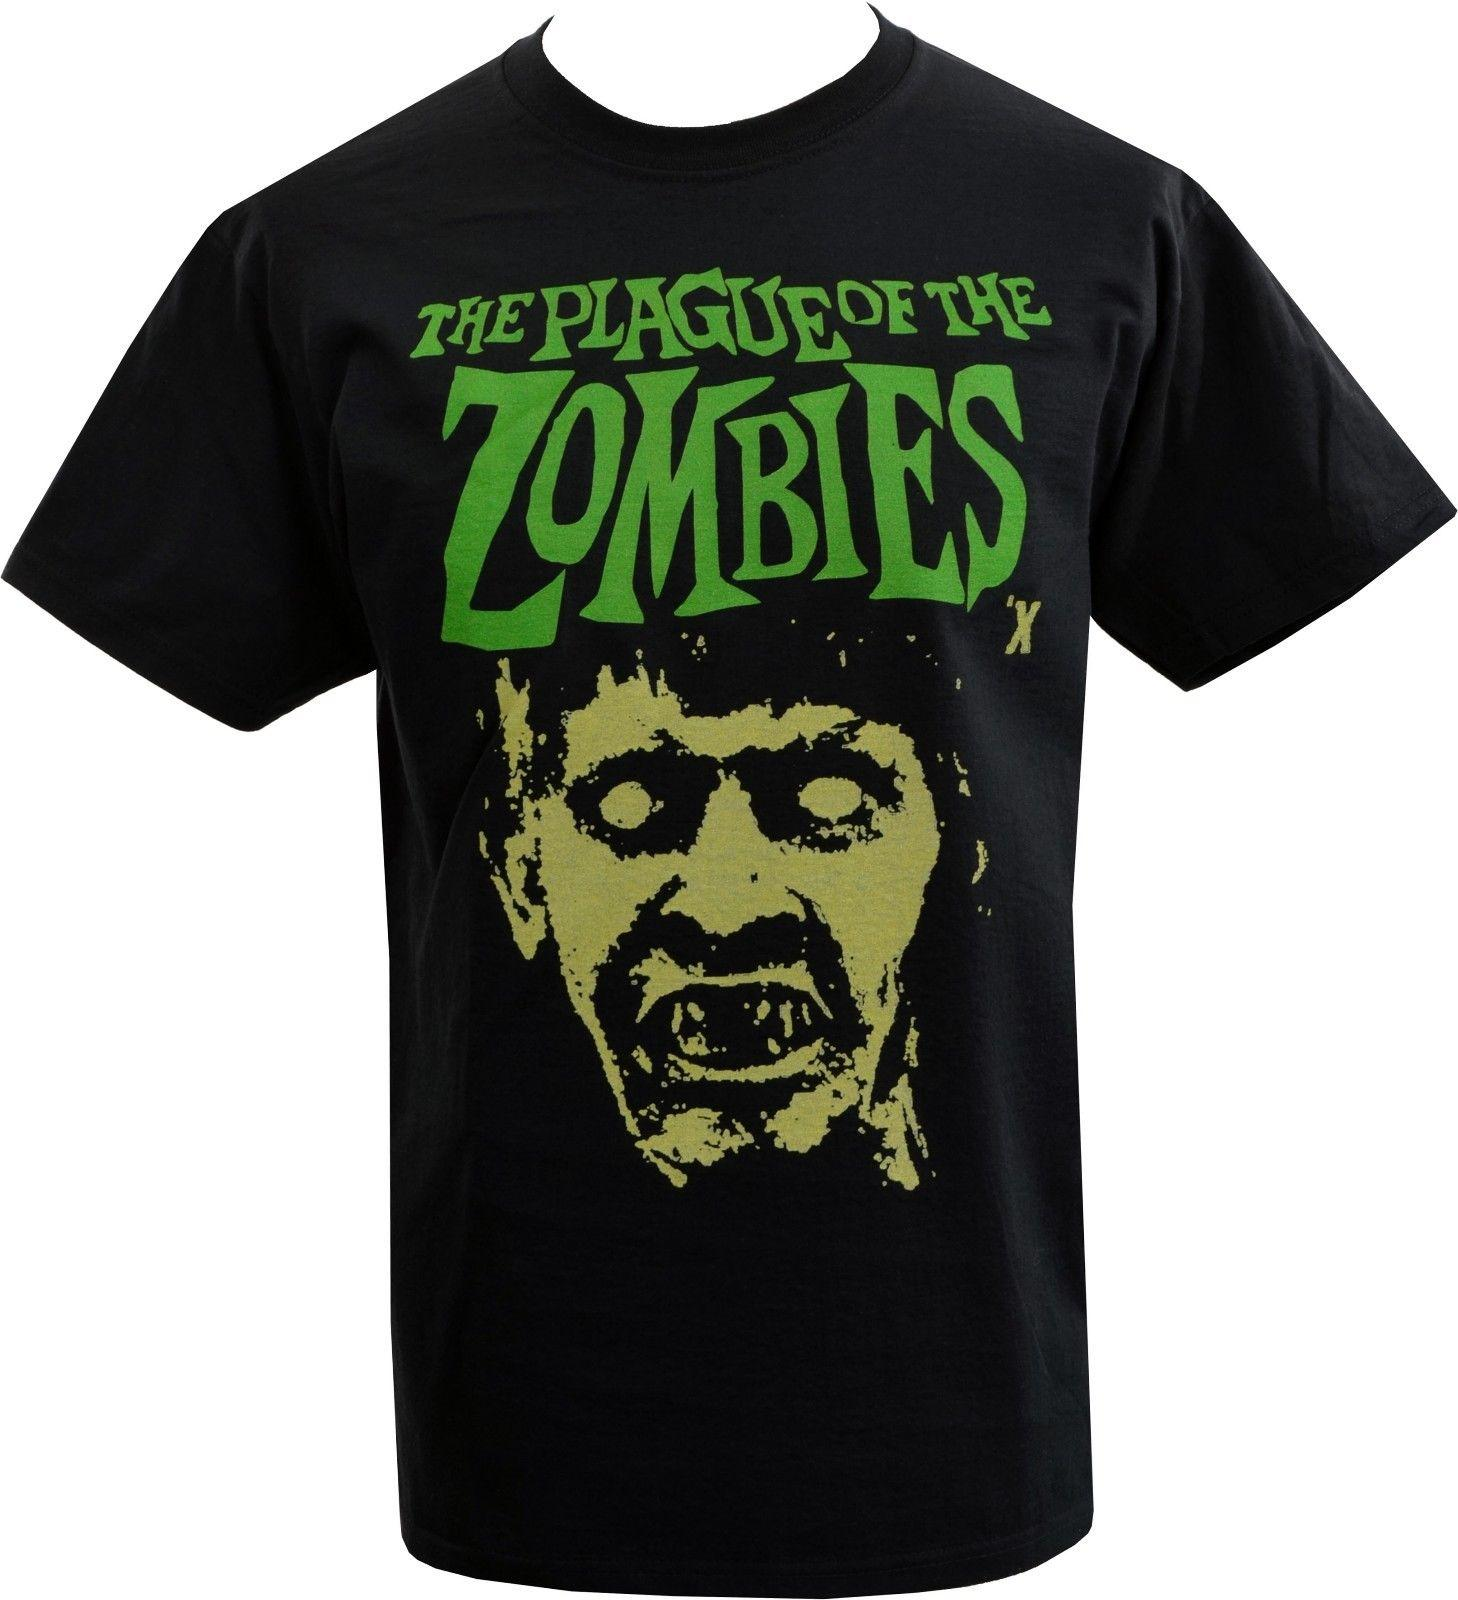 ae2d8834 Sample Sale! MENS T SHIRT PLAGUE OF THE ZOMBIE CLASSIC CULT HORROR FILM  MOVIE M Funny Unisex Casual Tshirt Top Really Funny Shirts Clothes T Shirt  From ...